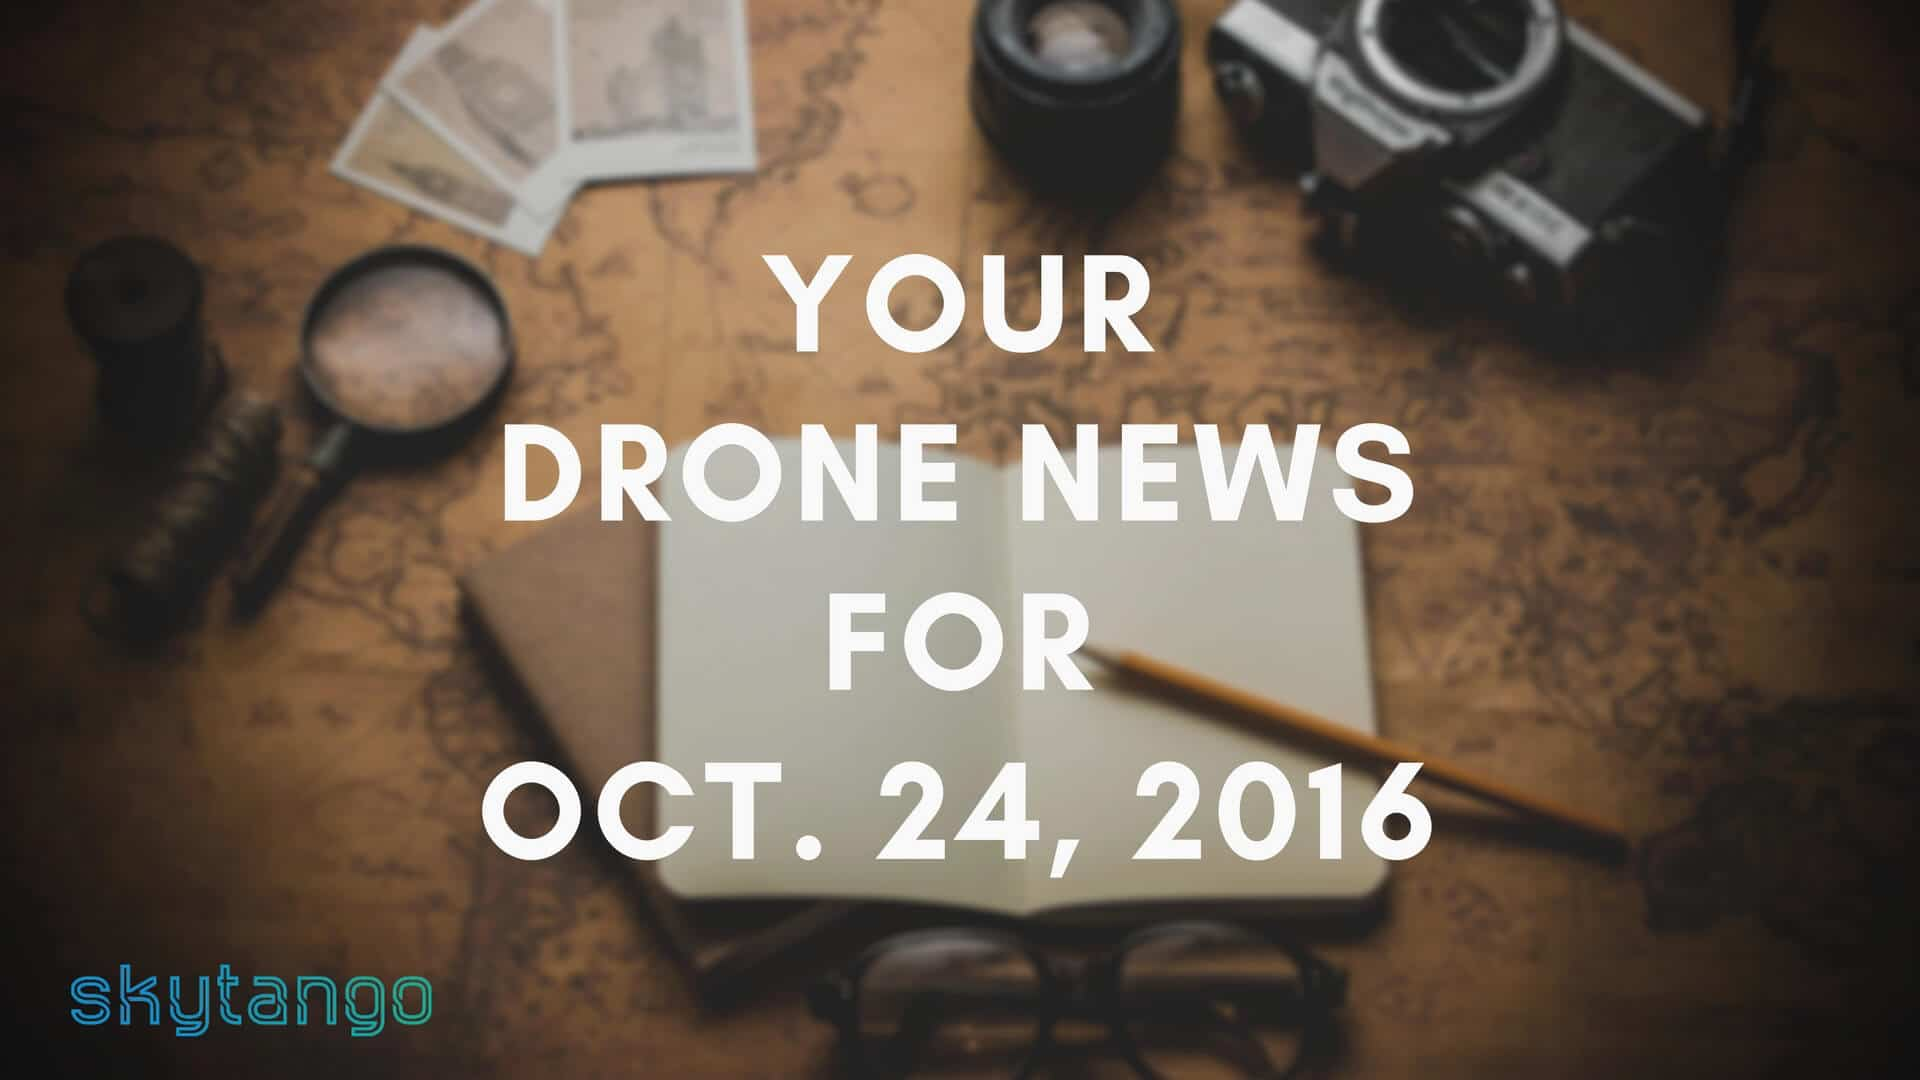 Top drone industry news October 24 2016